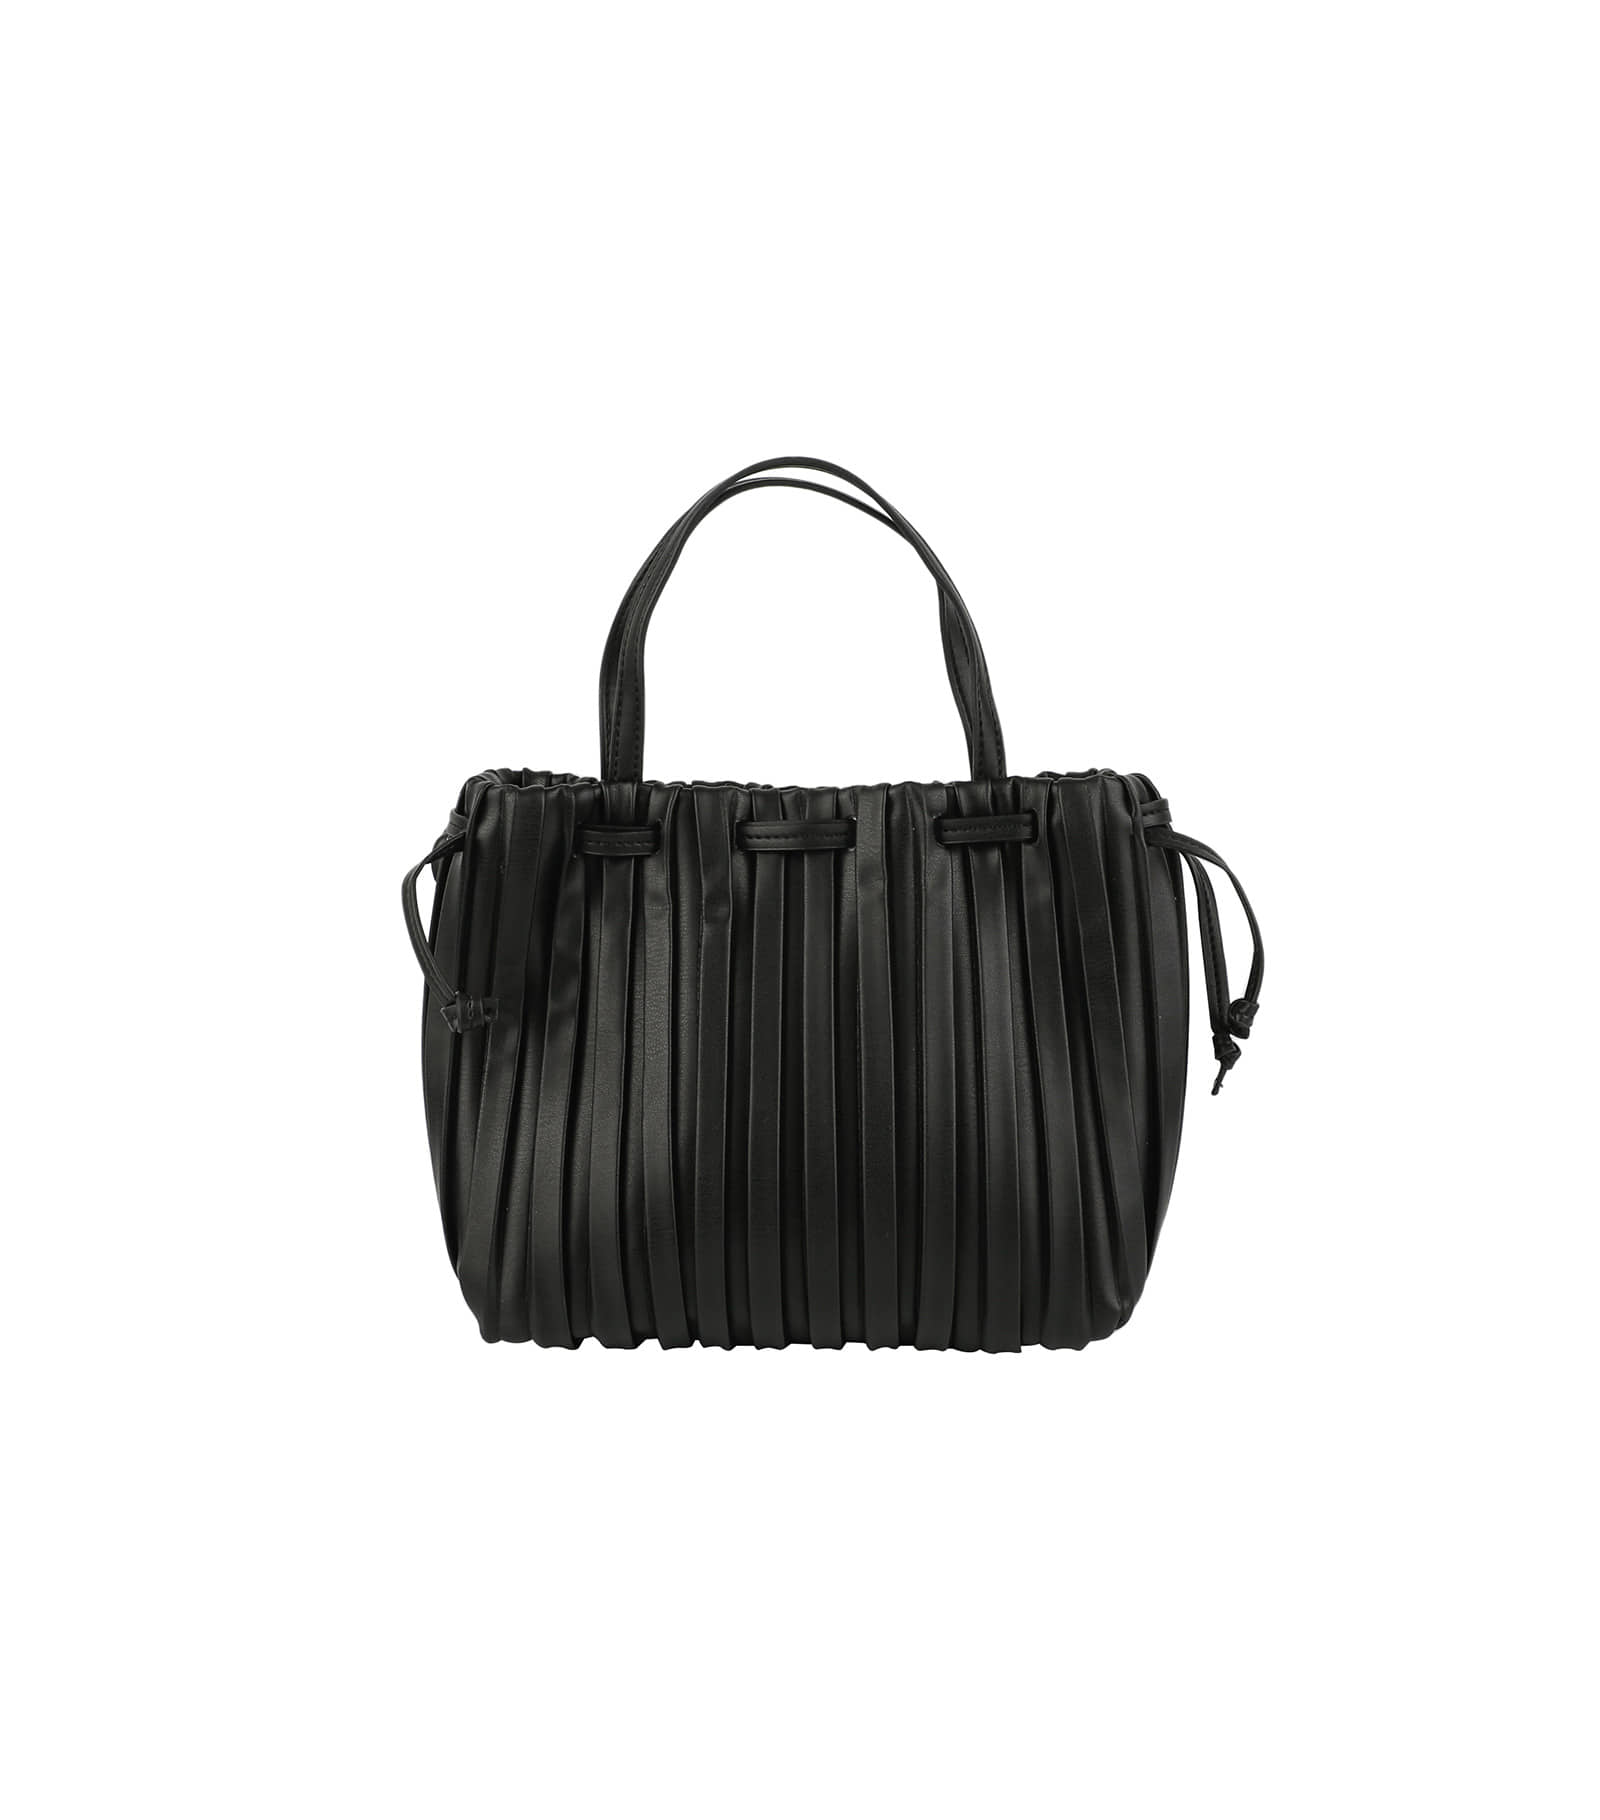 Pleated two-way tote bag